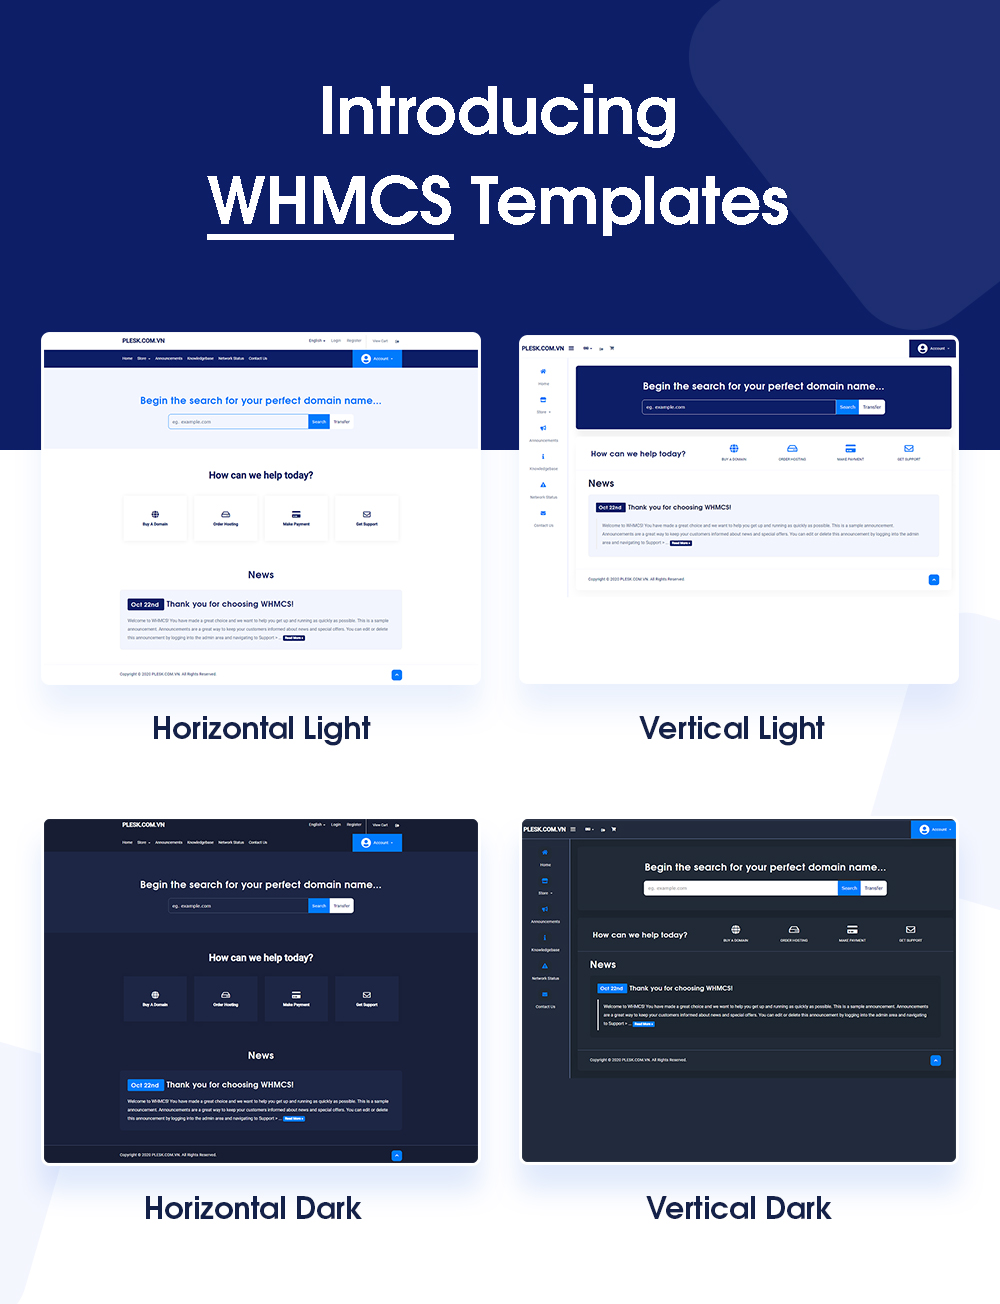 WHMCS Cloud Computing Apps and Server WordPress Theme | Qloud | Iqonic Design cloud computing, apps and server html, whmcs, vue & angular template Qloud 1